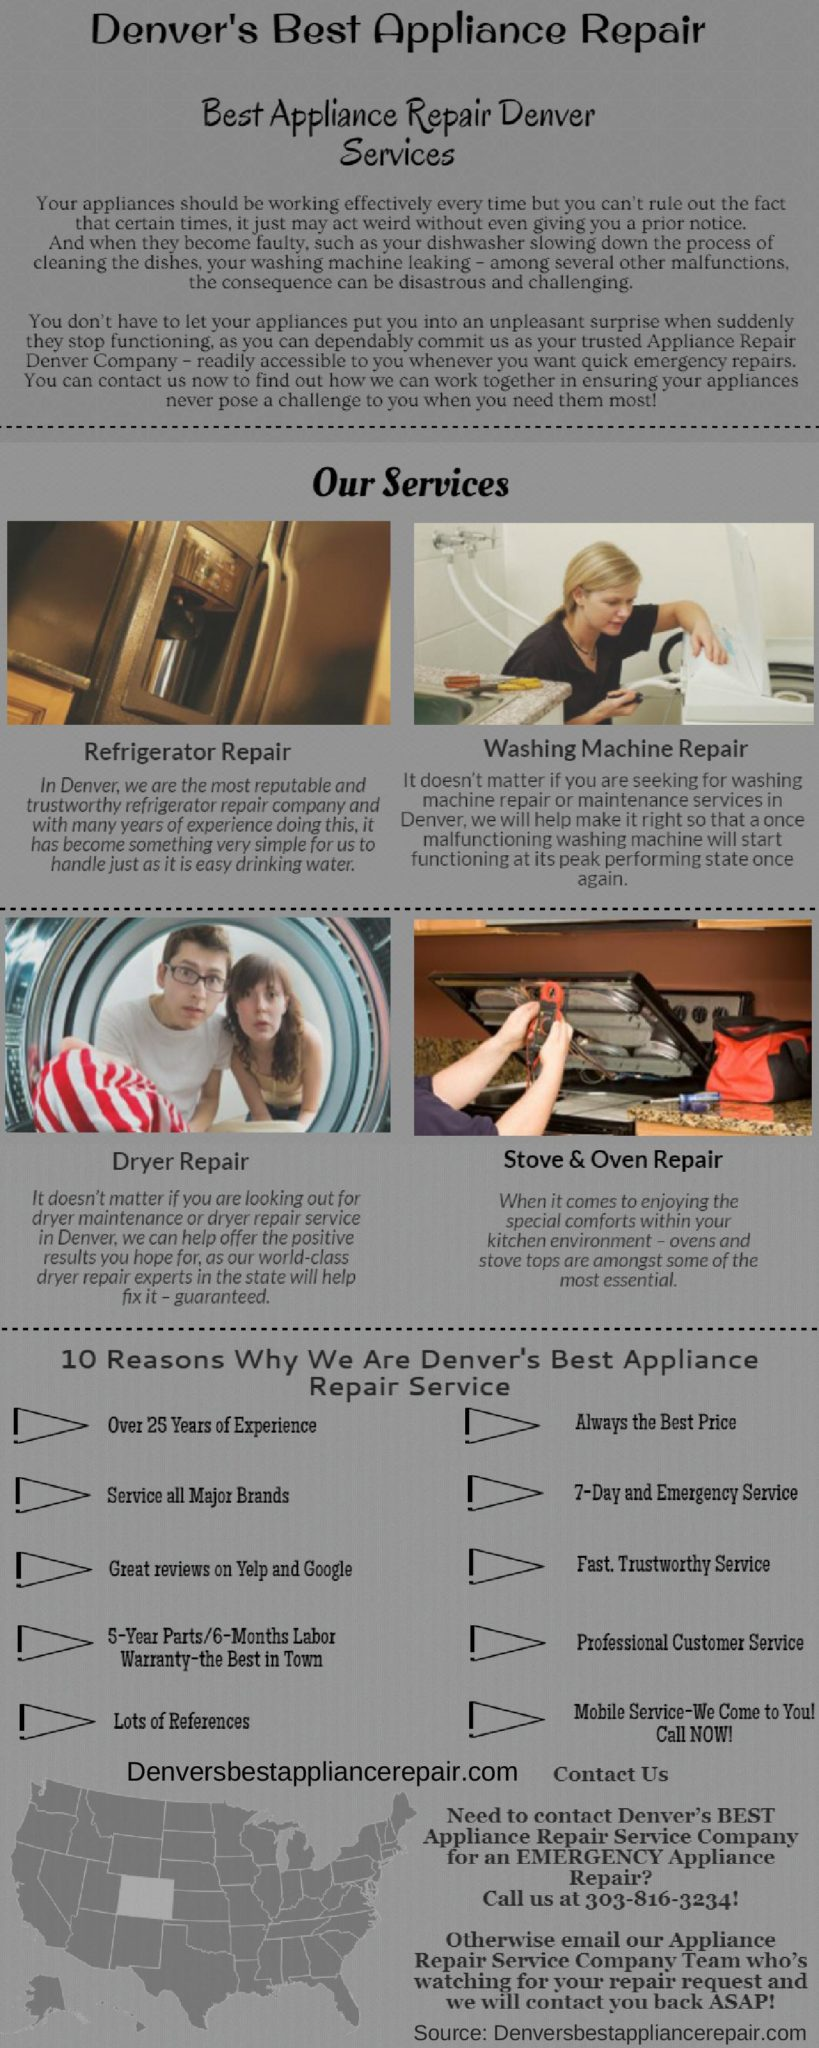 Appliance Repair Services in Denver